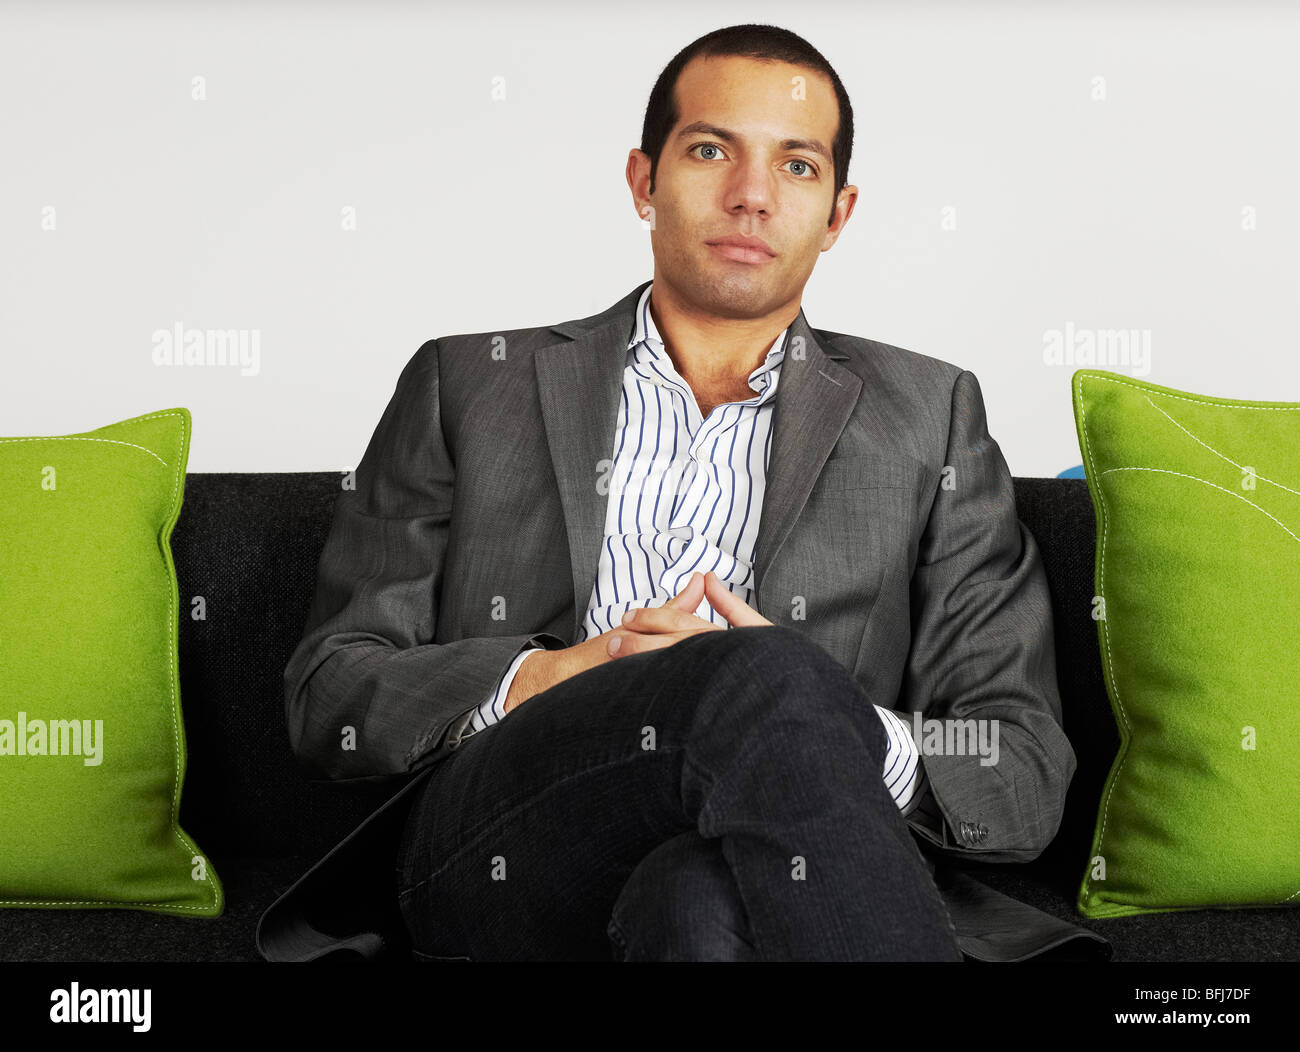 Portrait of a businessman, Sweden. - Stock Image